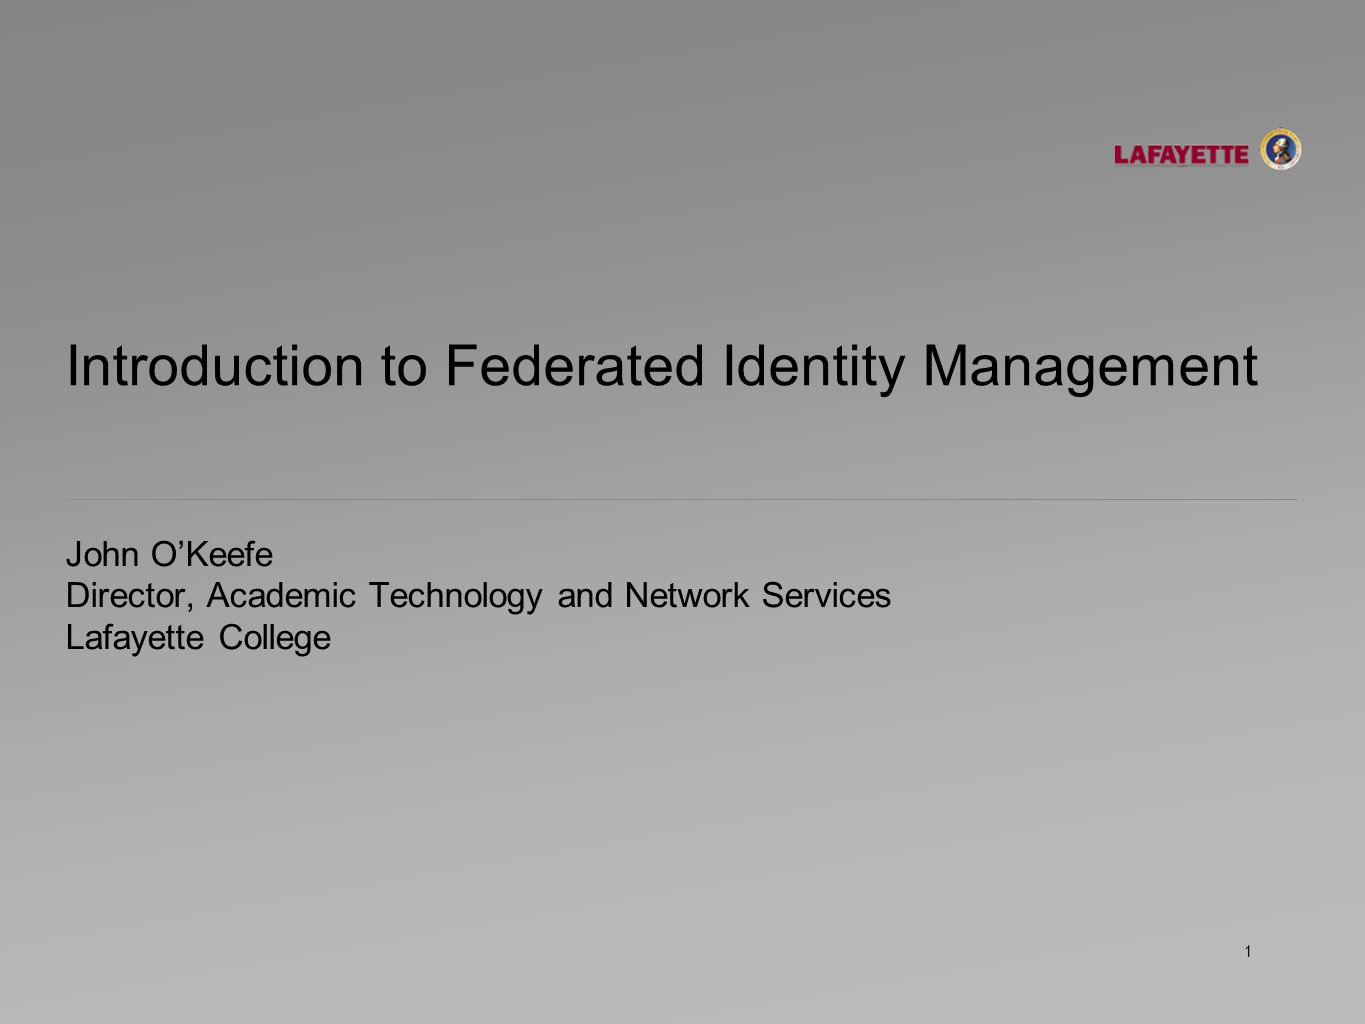 Introduction to Federated Identity Management John O'Keefe Director, Academic Technology and Network Services Lafayette College 1